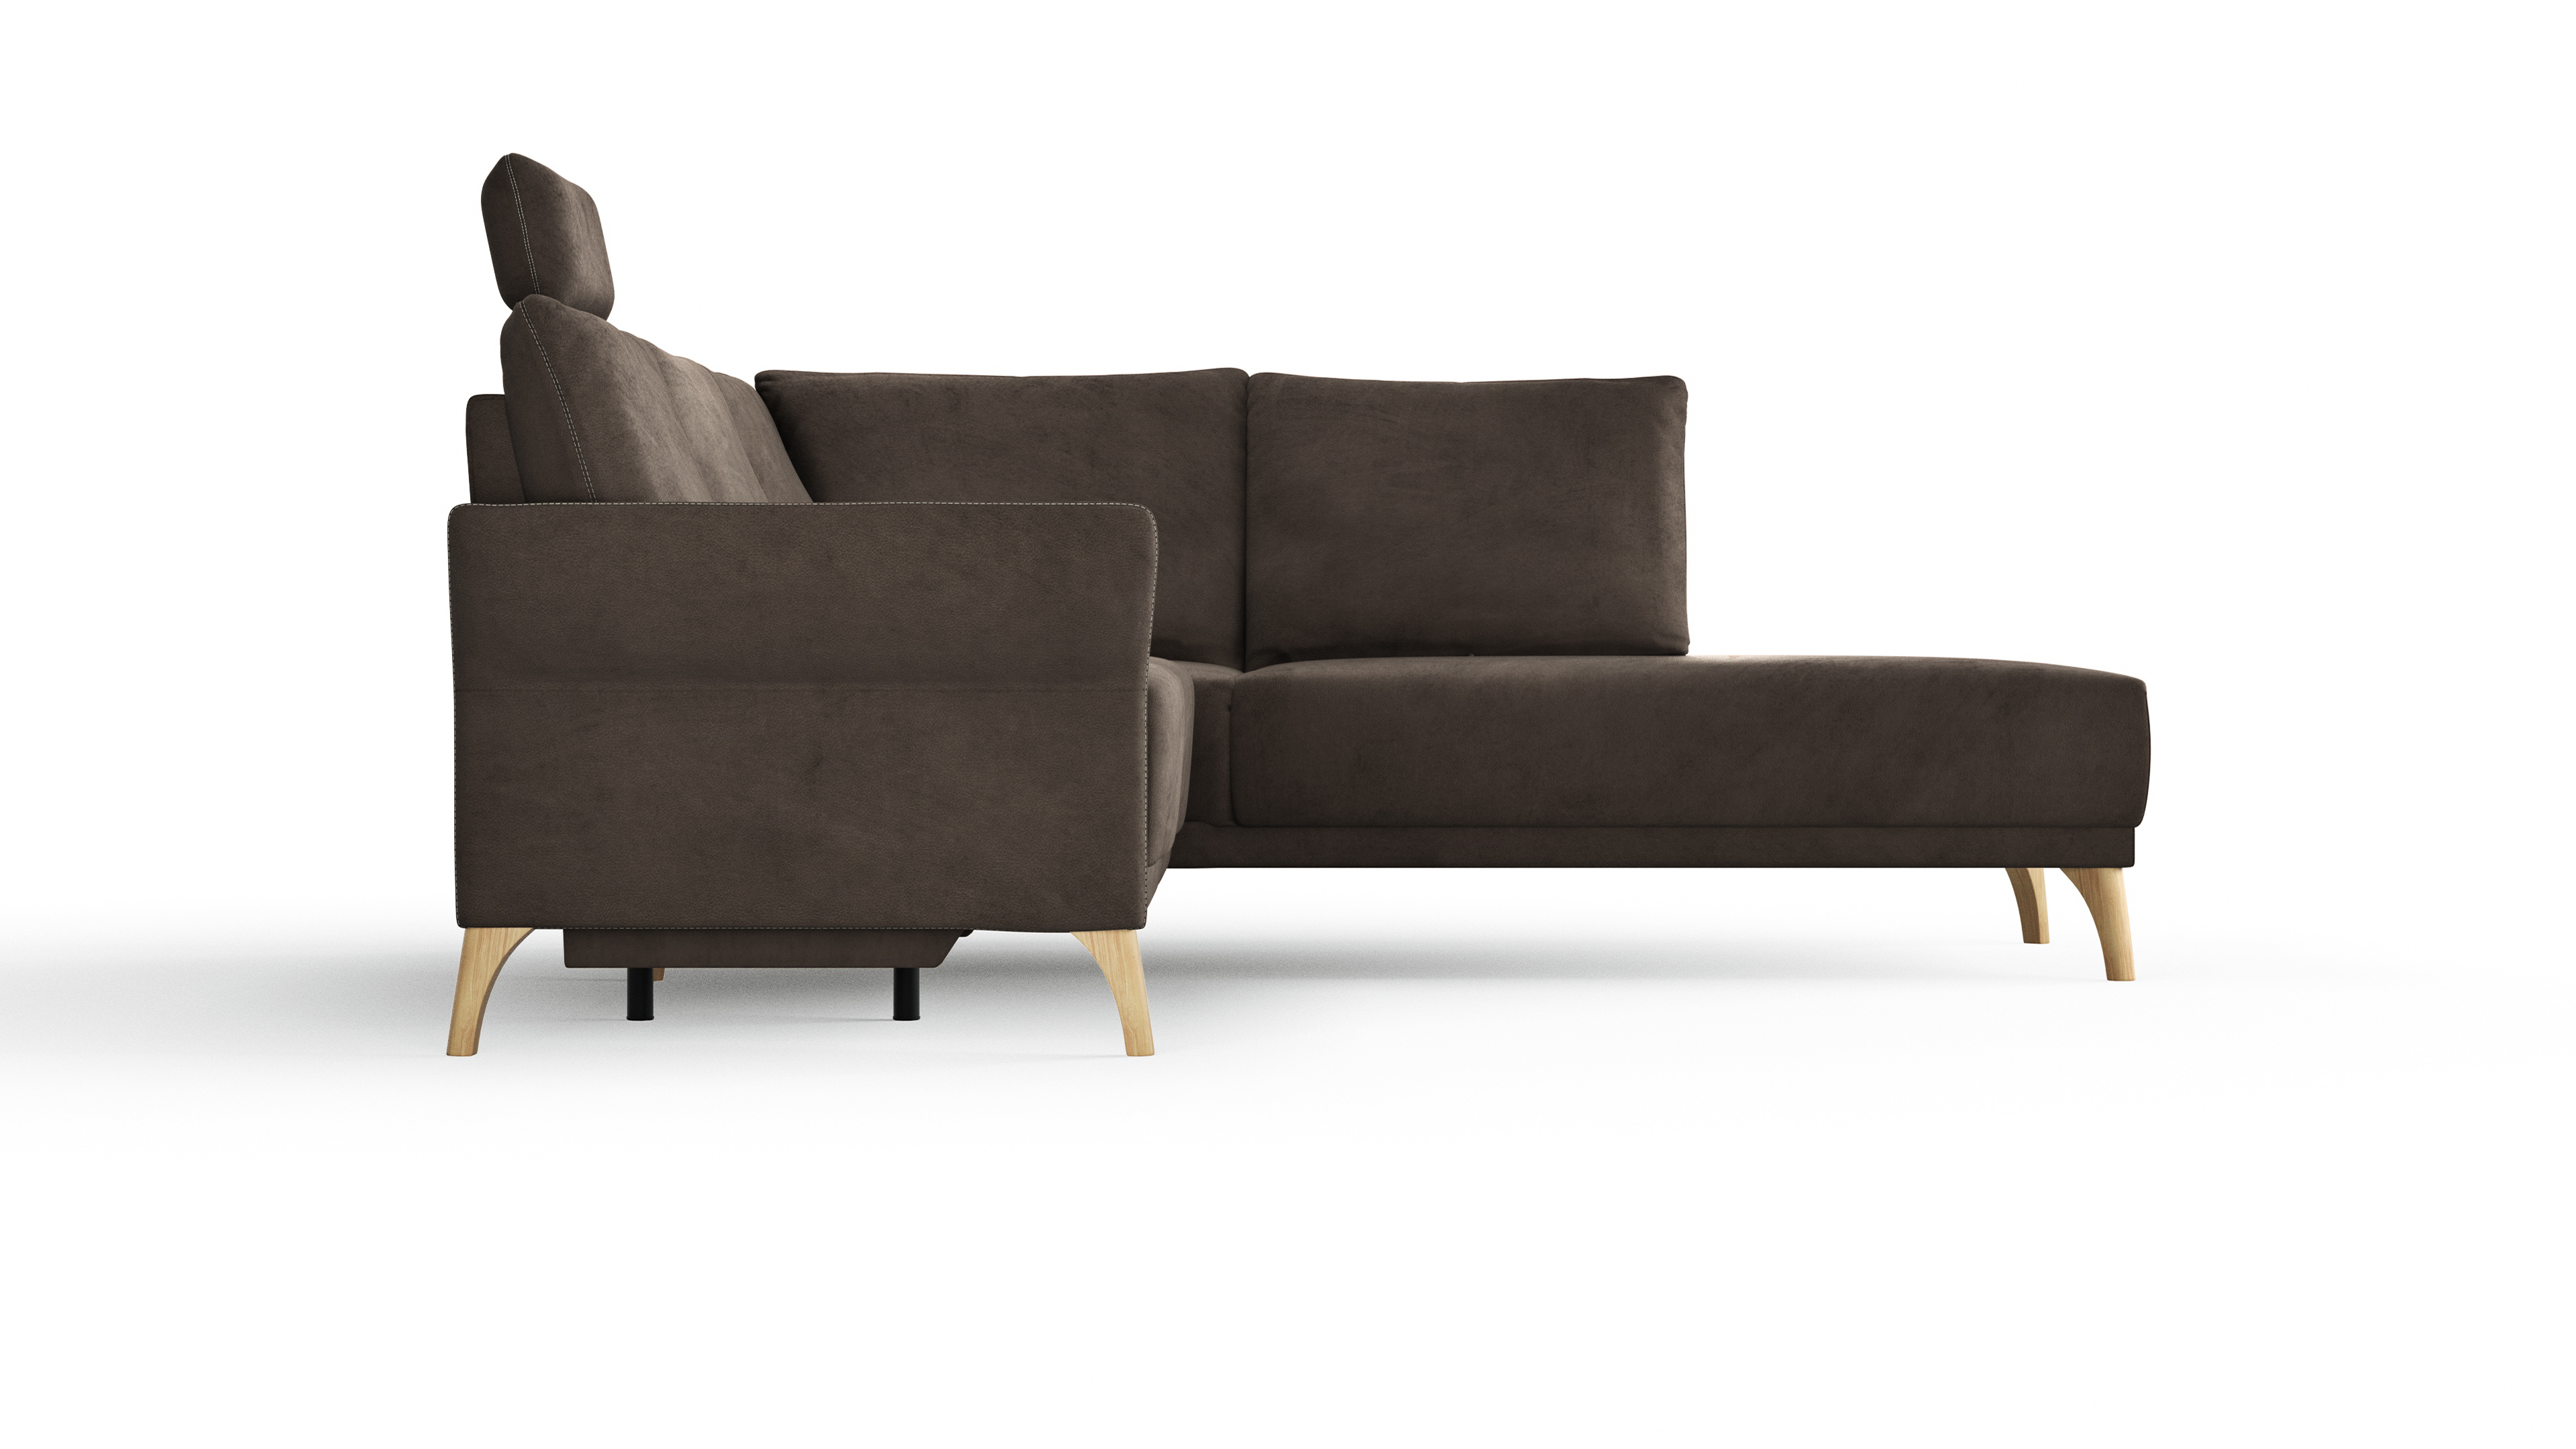 Global Comfort Ecksofa Rosario freisteller 2 102537 | Homepoet